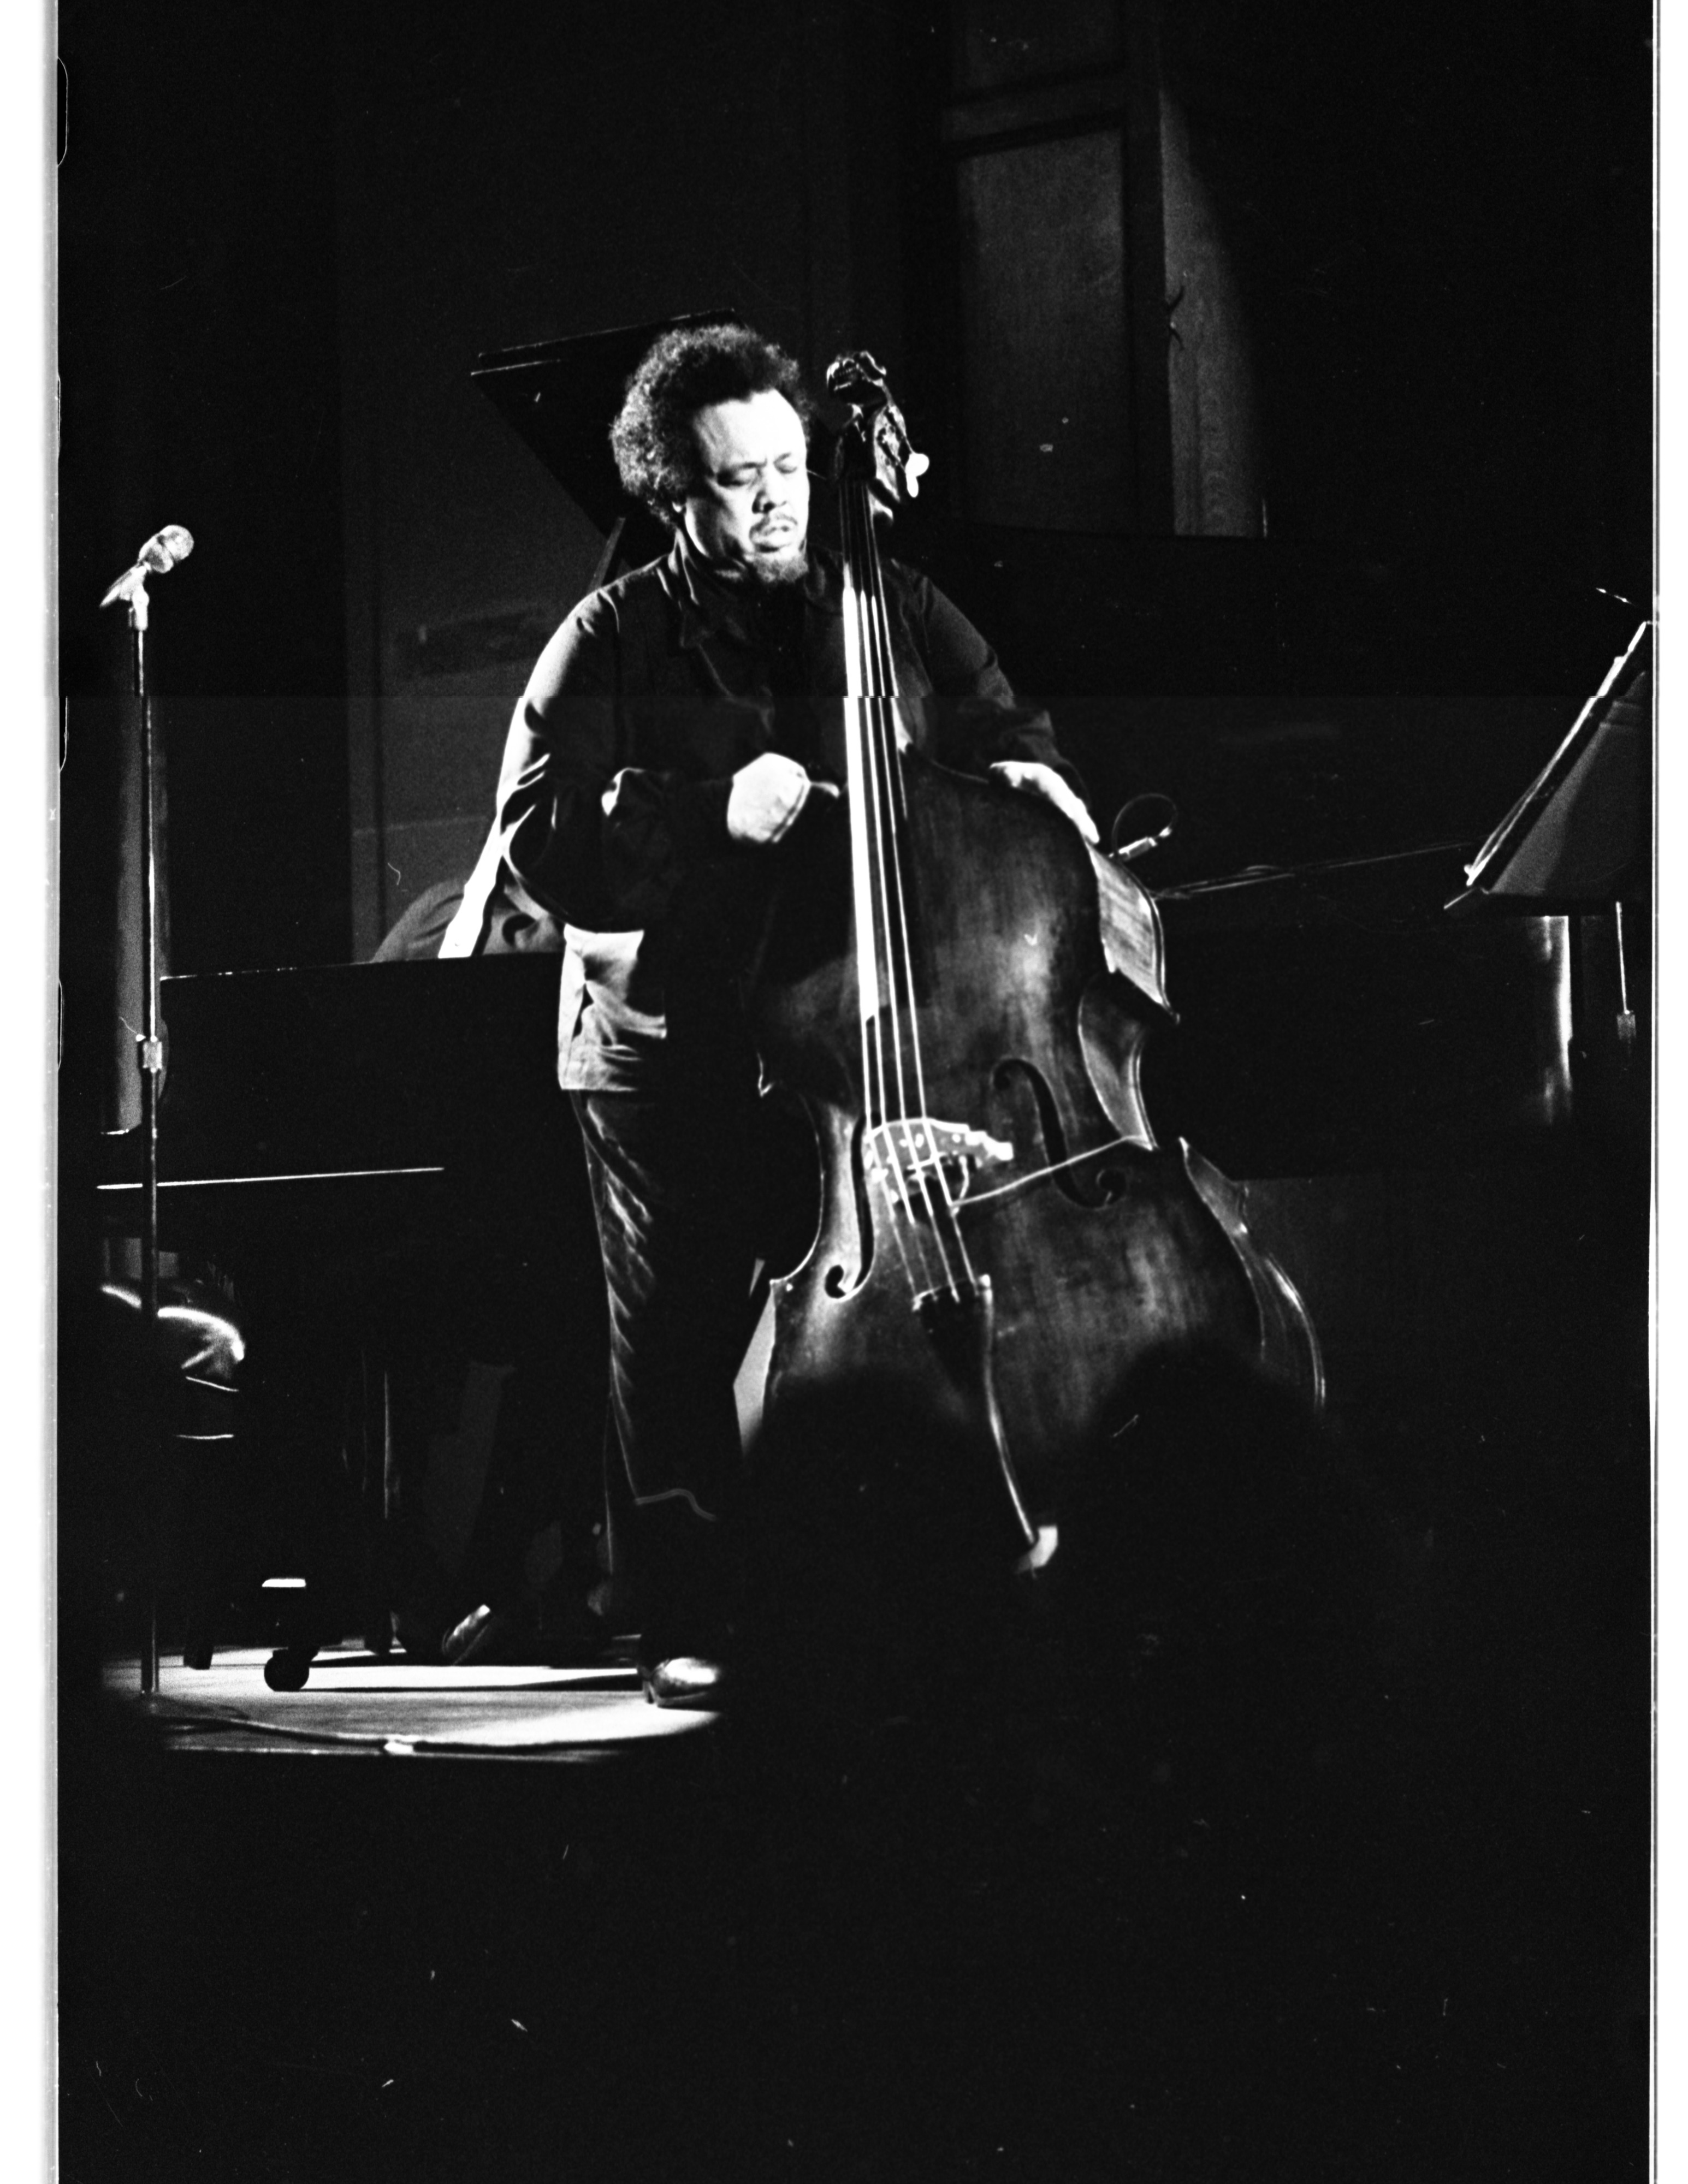 Charles Mingus in Concert, Michigan Union Ballroom, February 5, 1977 image